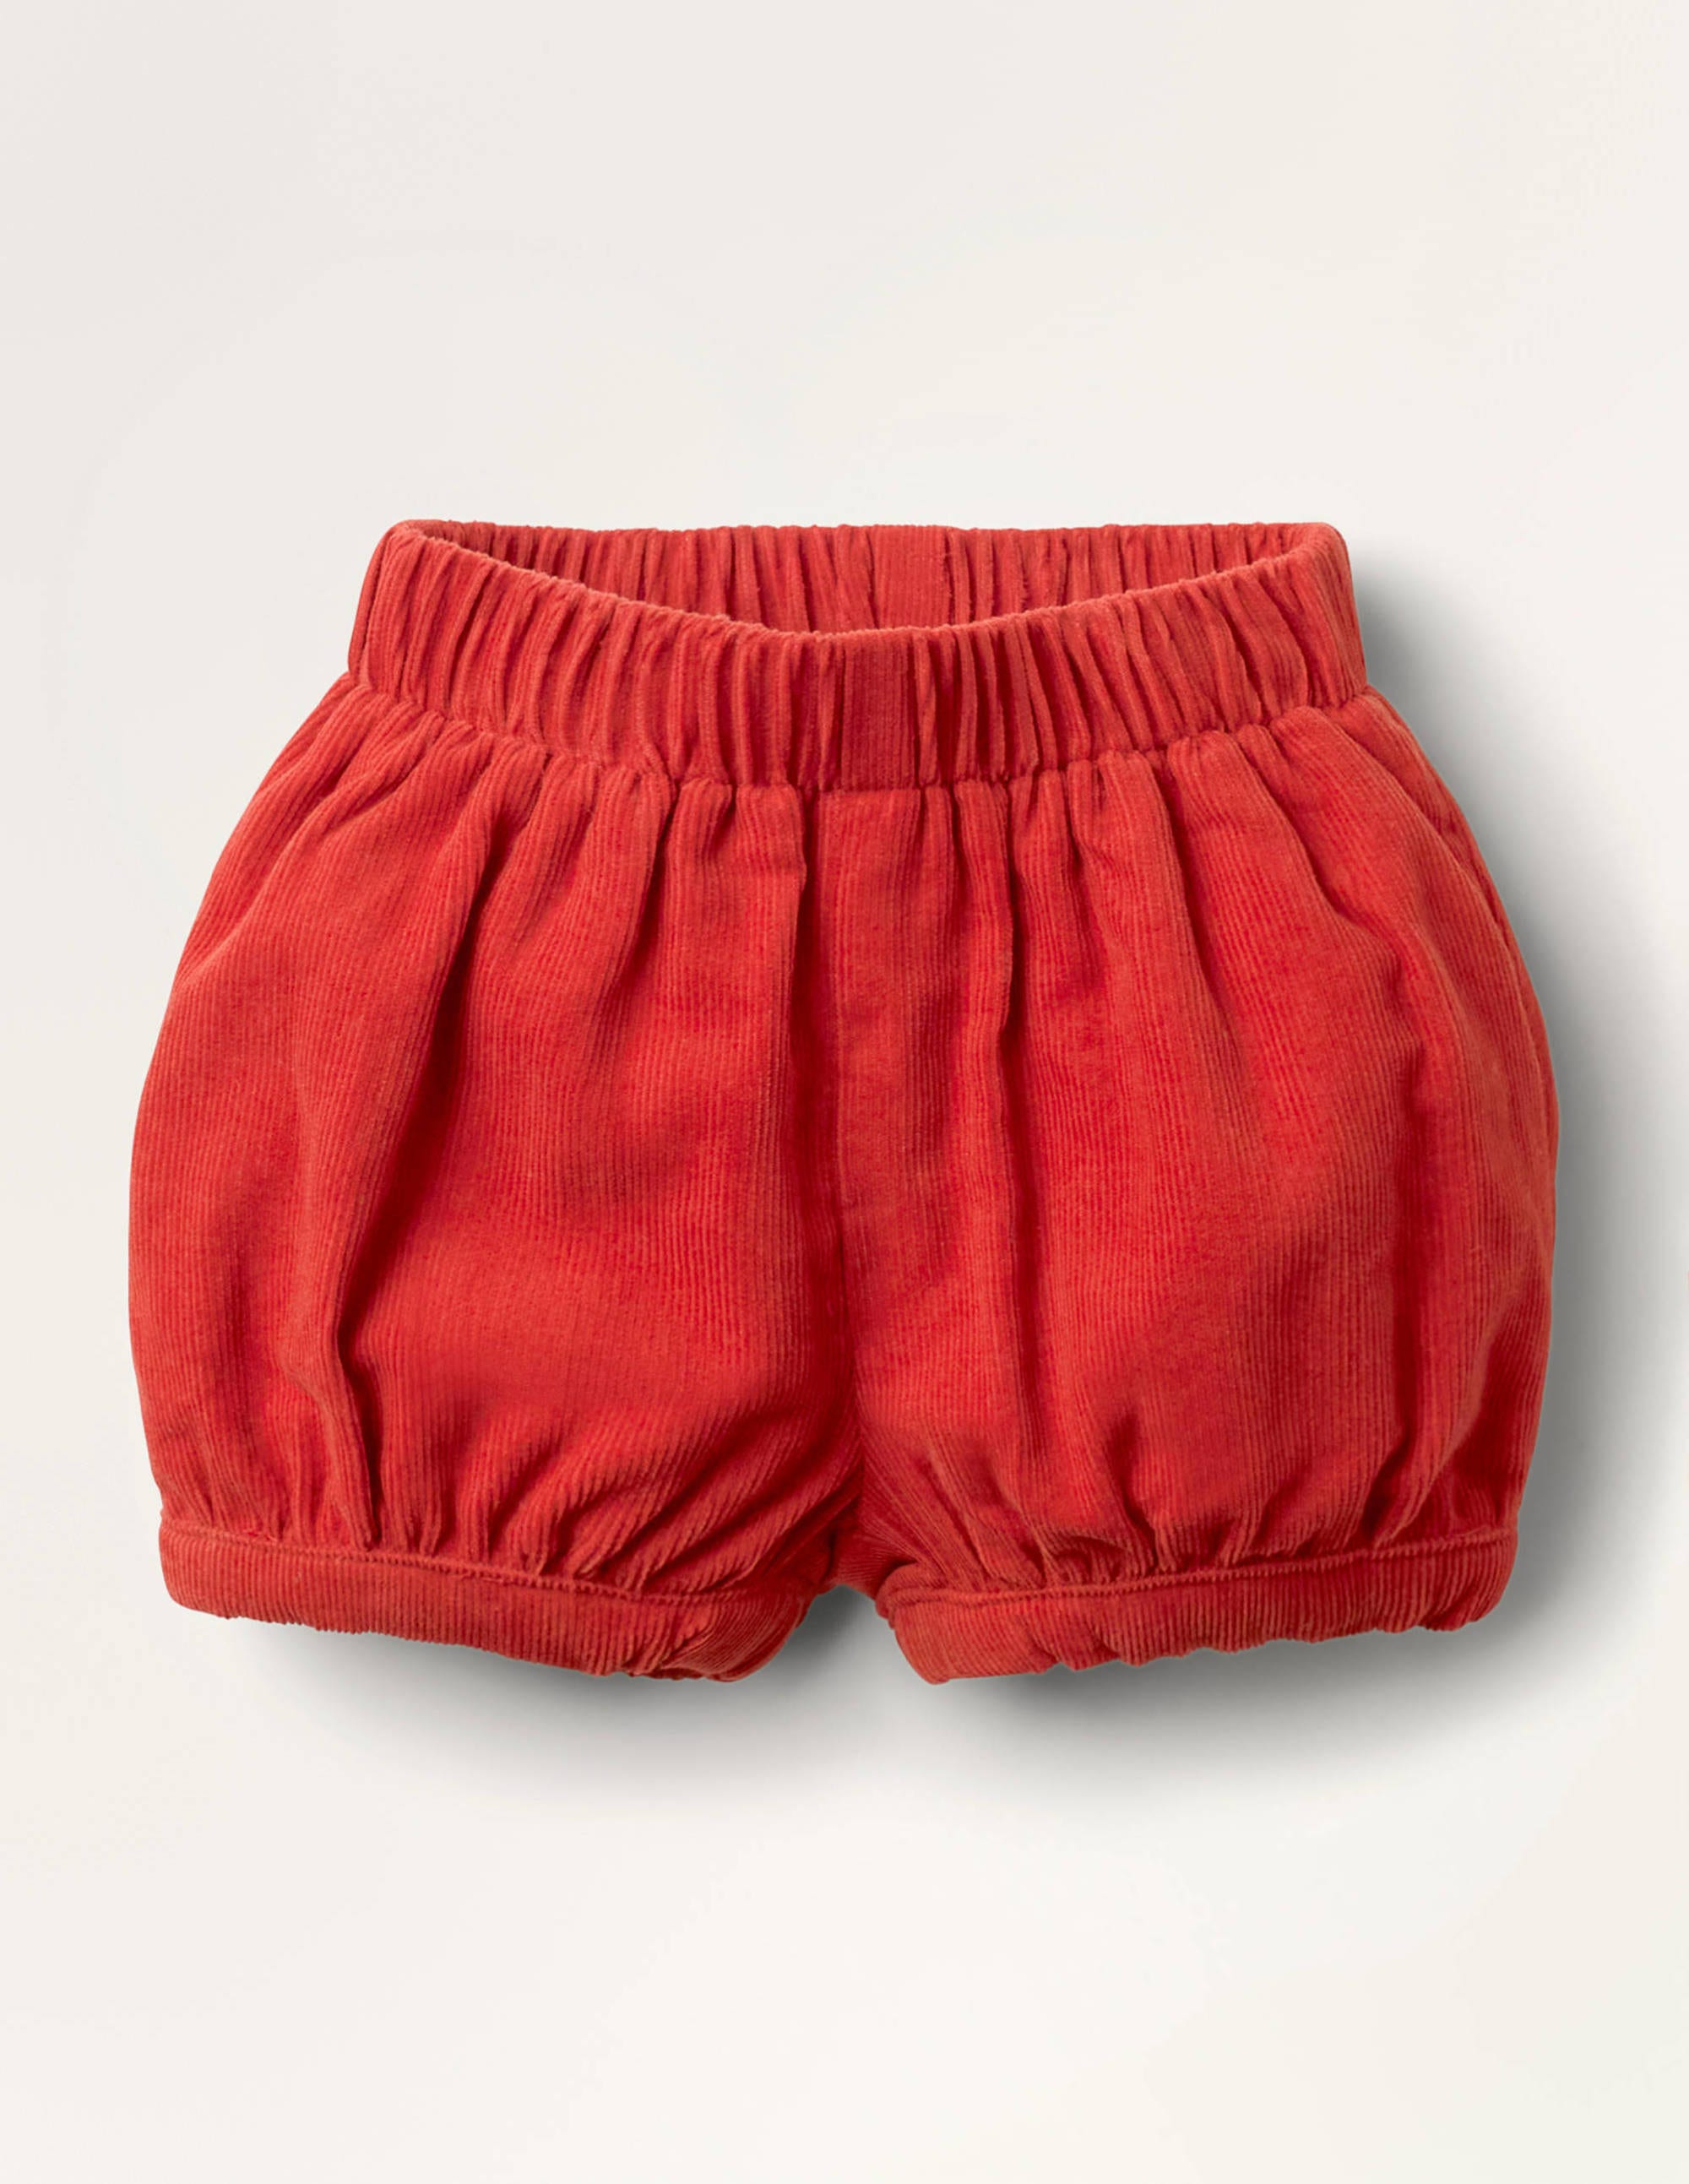 Boden Cord Bloomers - Cherry Tomato Red